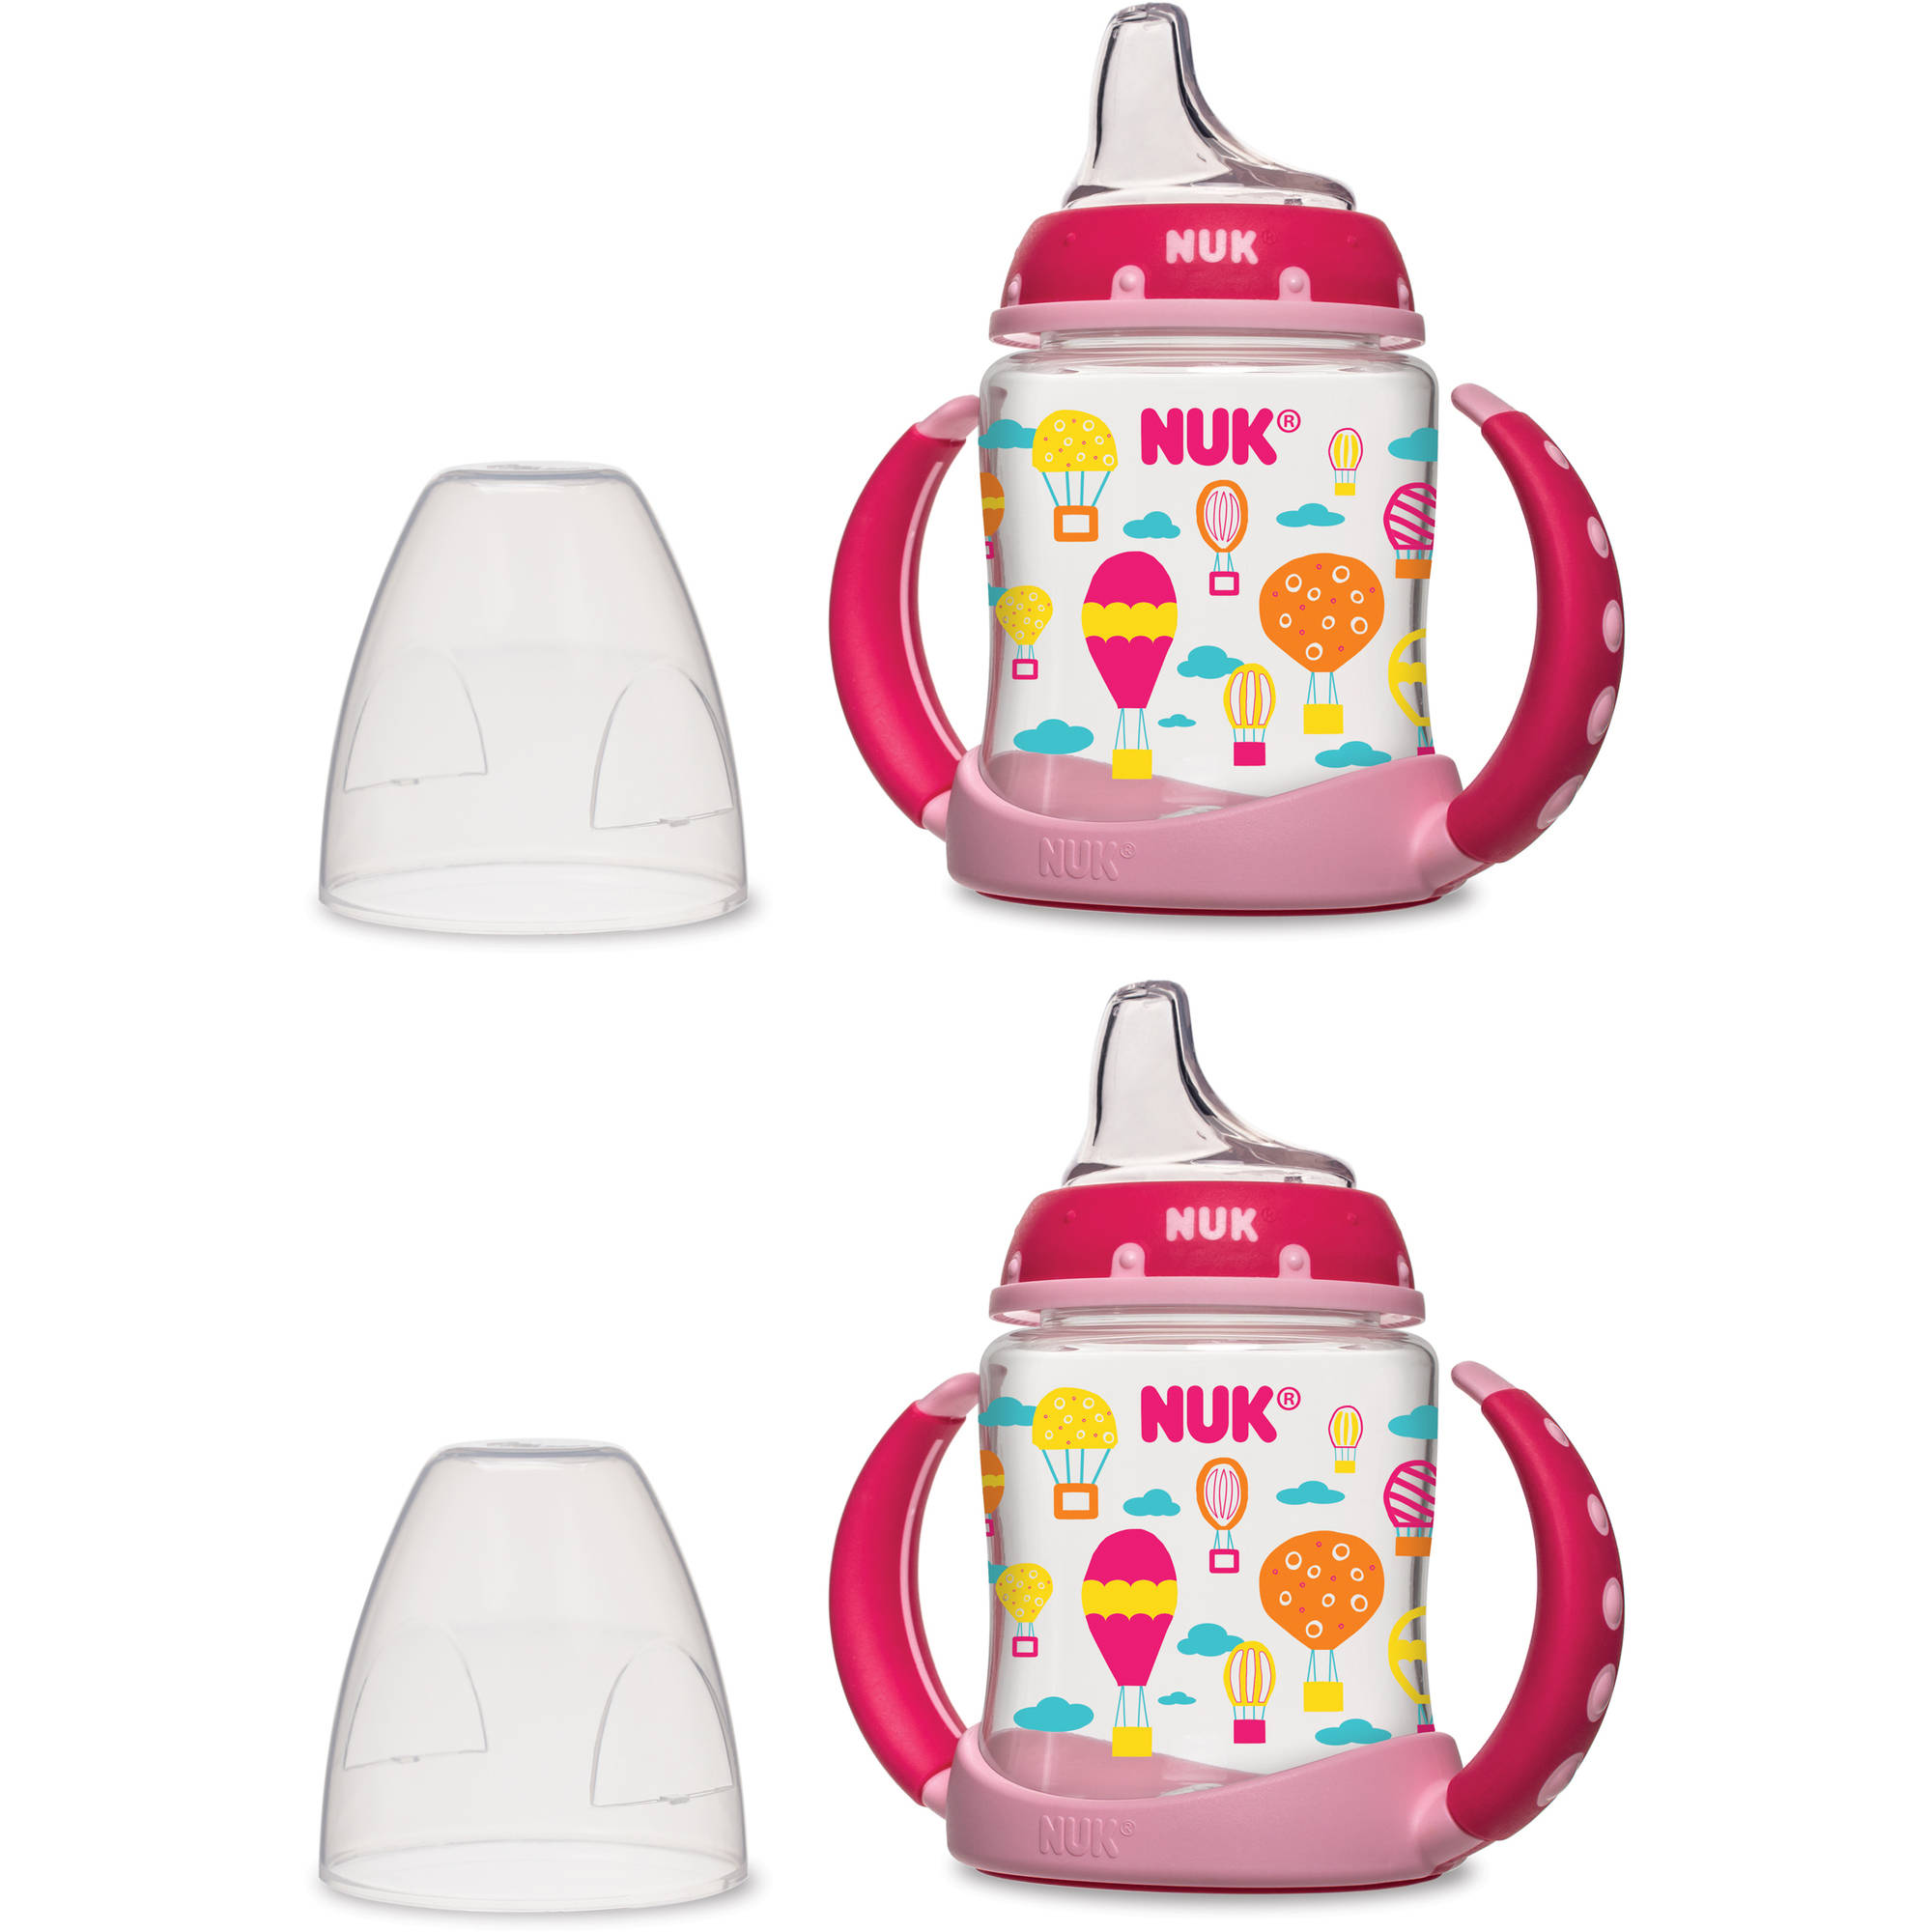 NUK 5-oz Learner Cups, Silicone Spout, Set of 2, Girl Design, BPA-Free